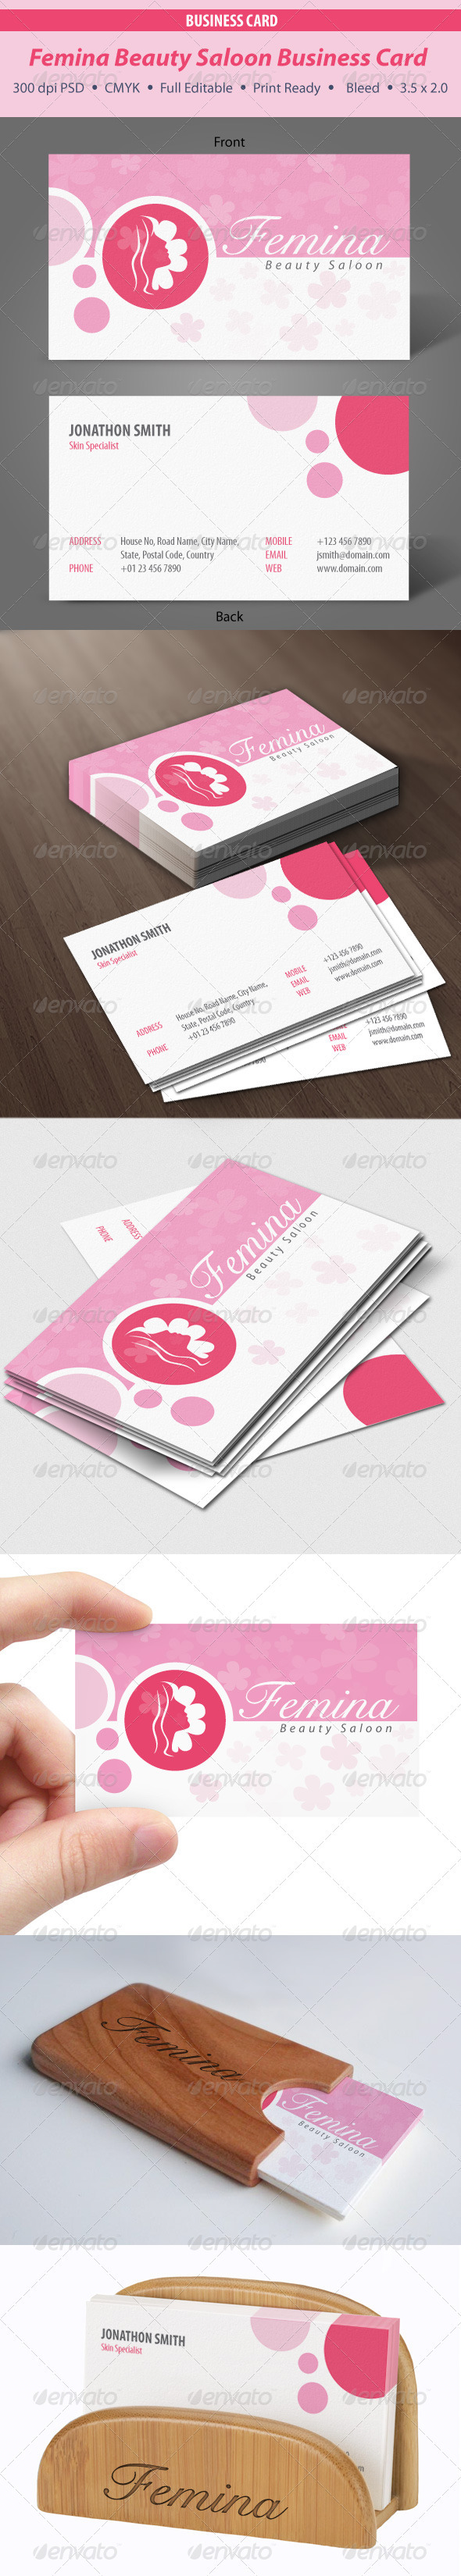 Ladies Beauty Parlour Board Design Sample Stock Photos Graphics